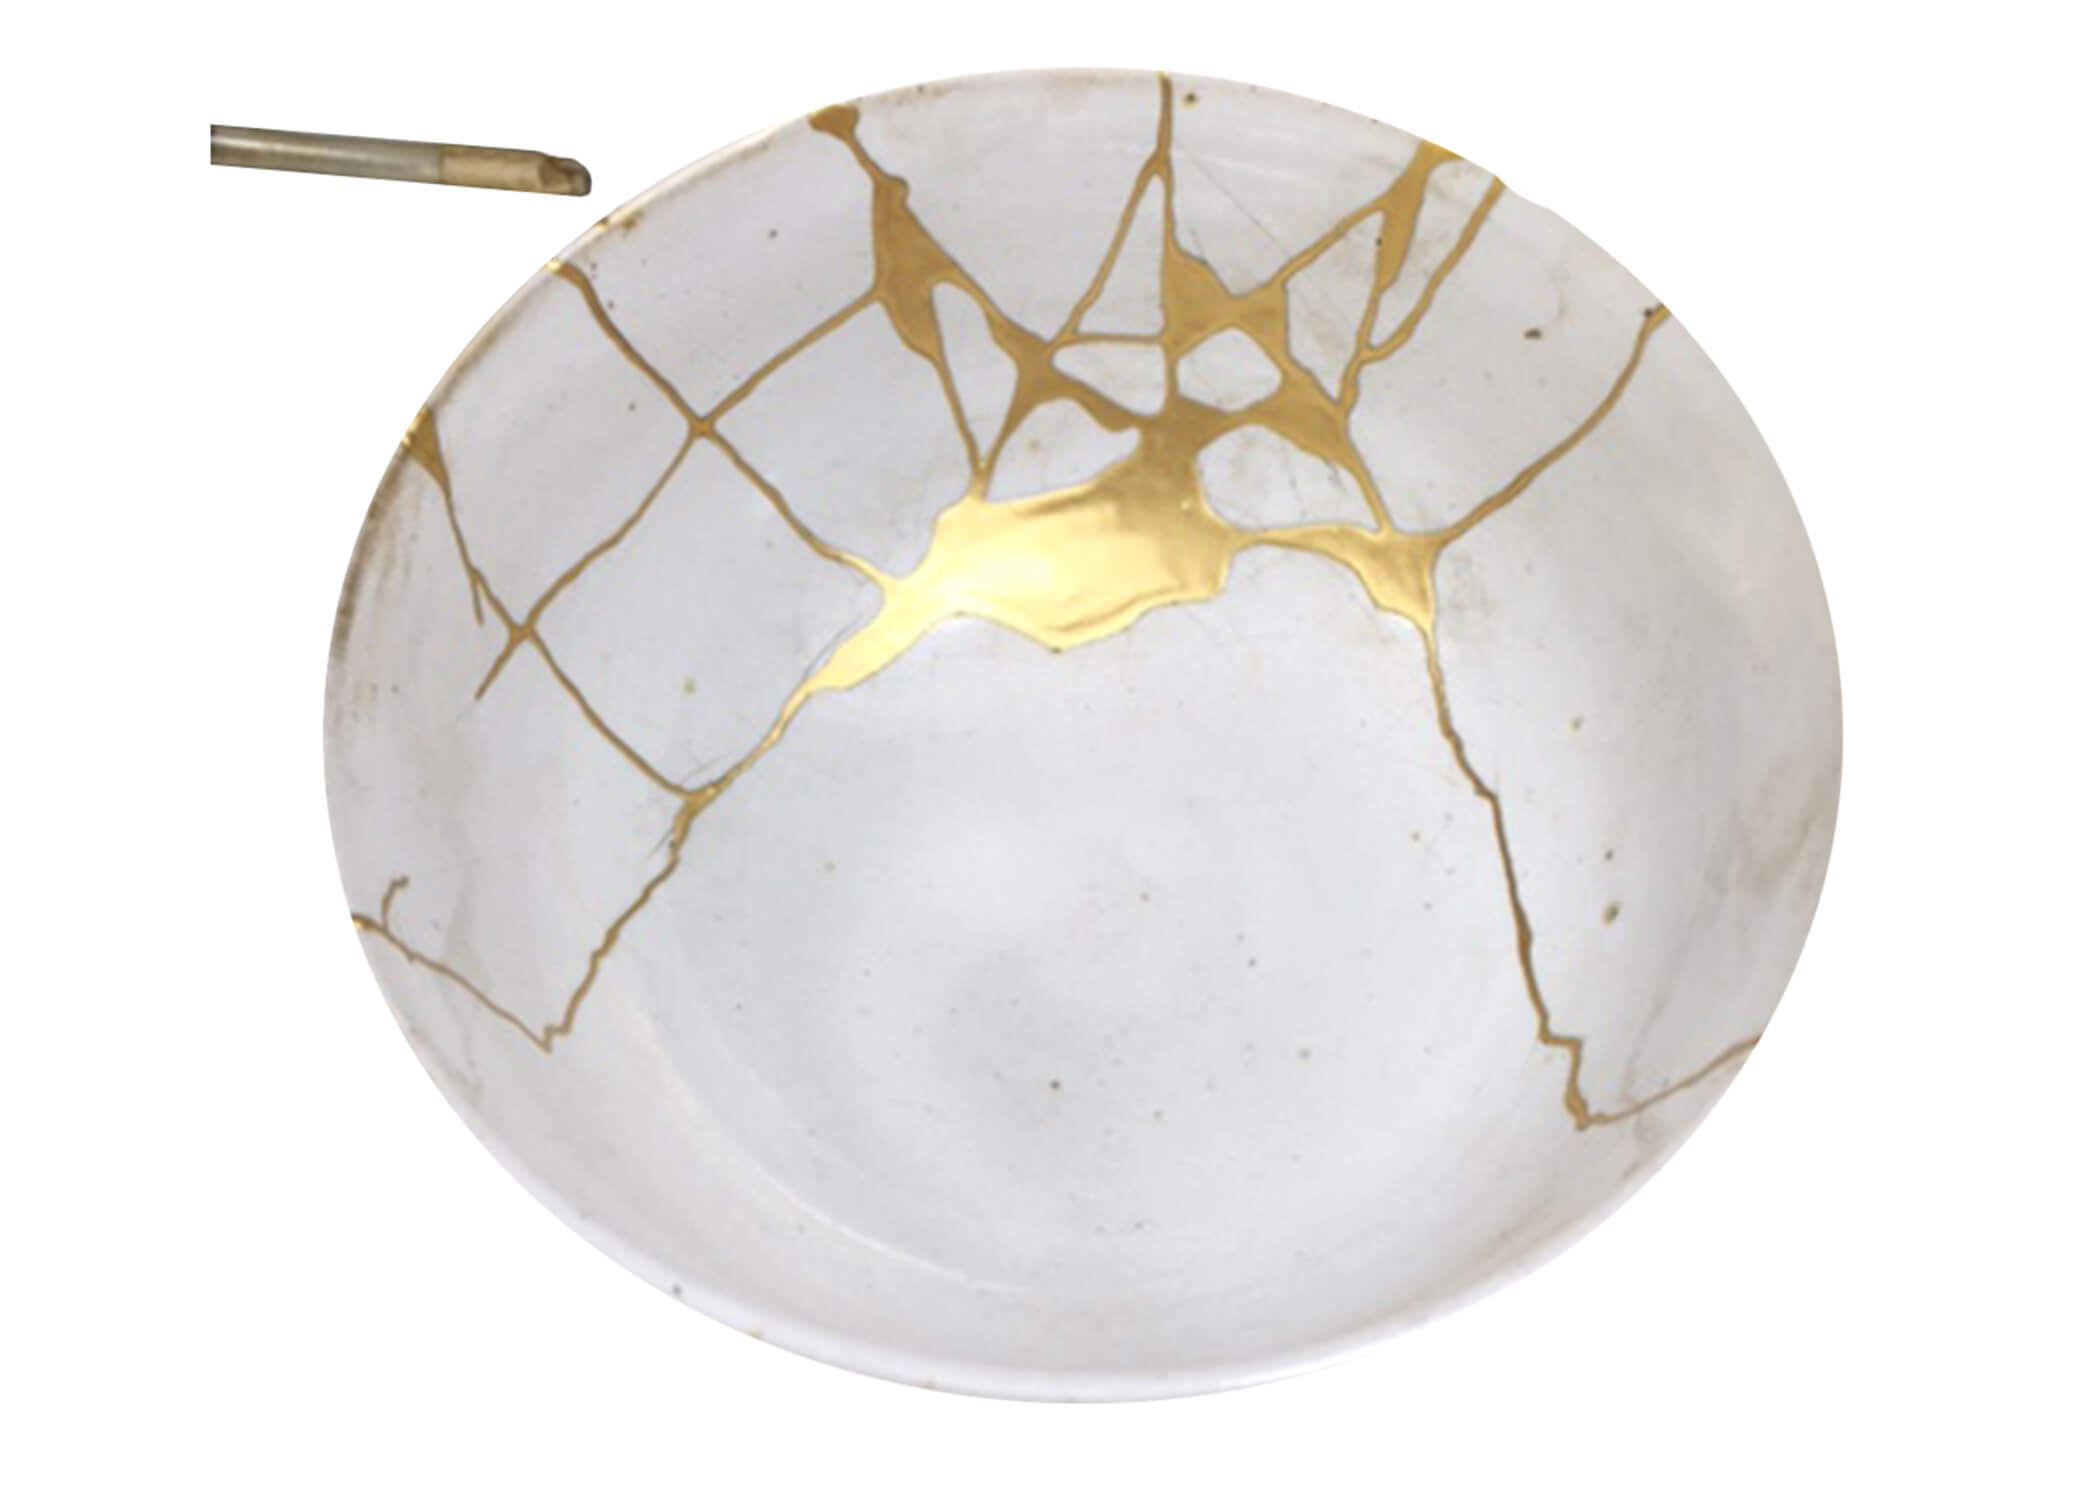 Kintsugi What Is The Kintsugi Definition Mind Kintsugi The Portal Of